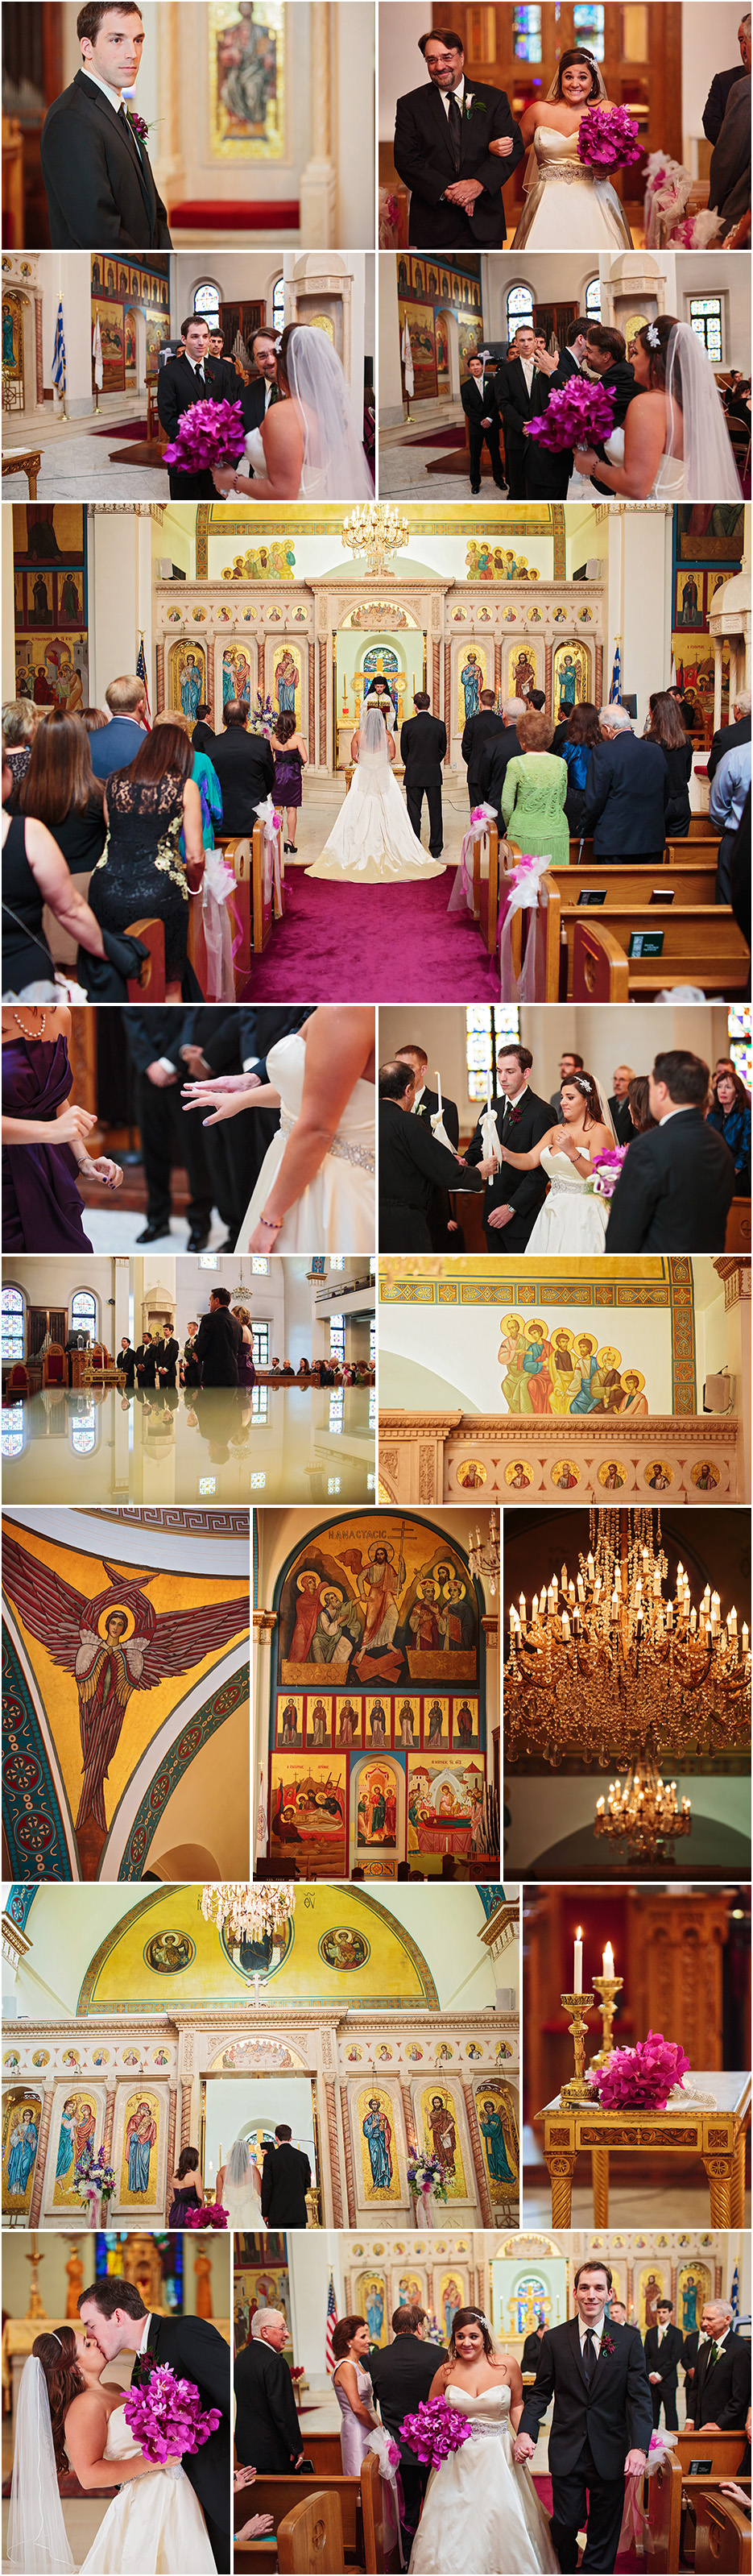 WEDDING PHOTOS BOSTON GREEK ORTHODOX CATHEDRAL